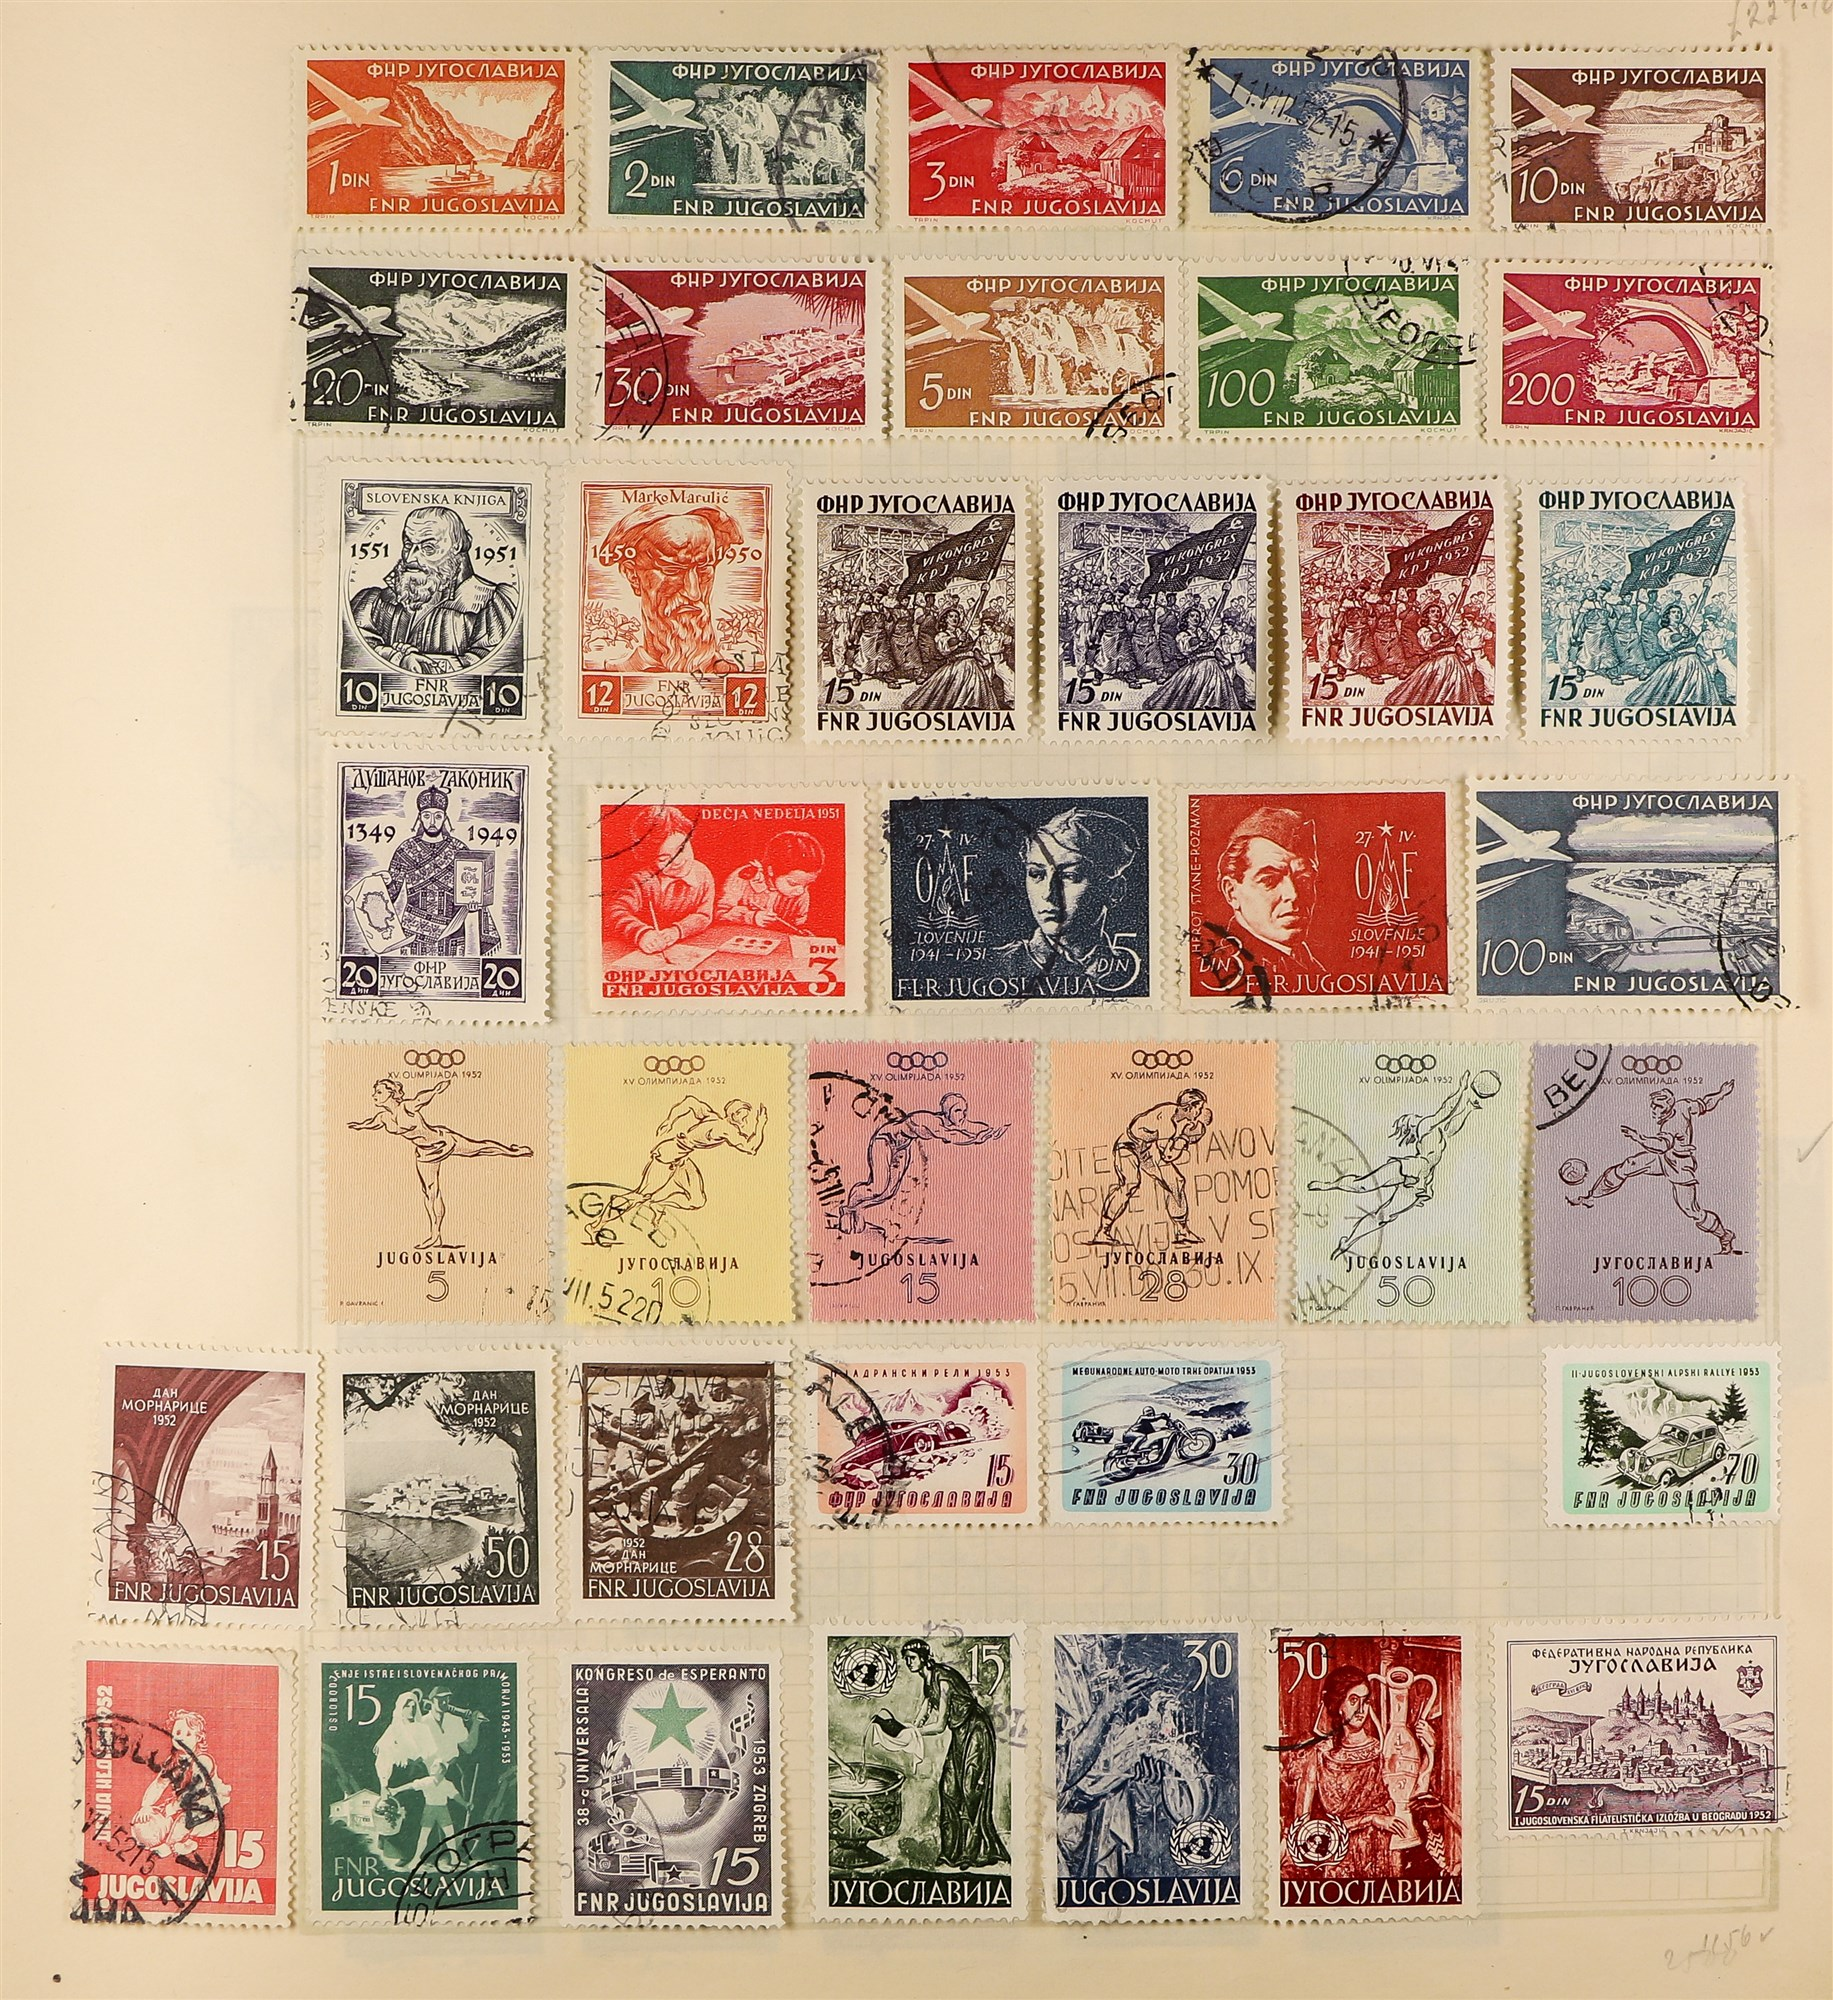 YUGOSLAVIA 1919-80 COLLECTION of mint and used issues in an album, incl. extensive Chainbreakers, - Image 8 of 17